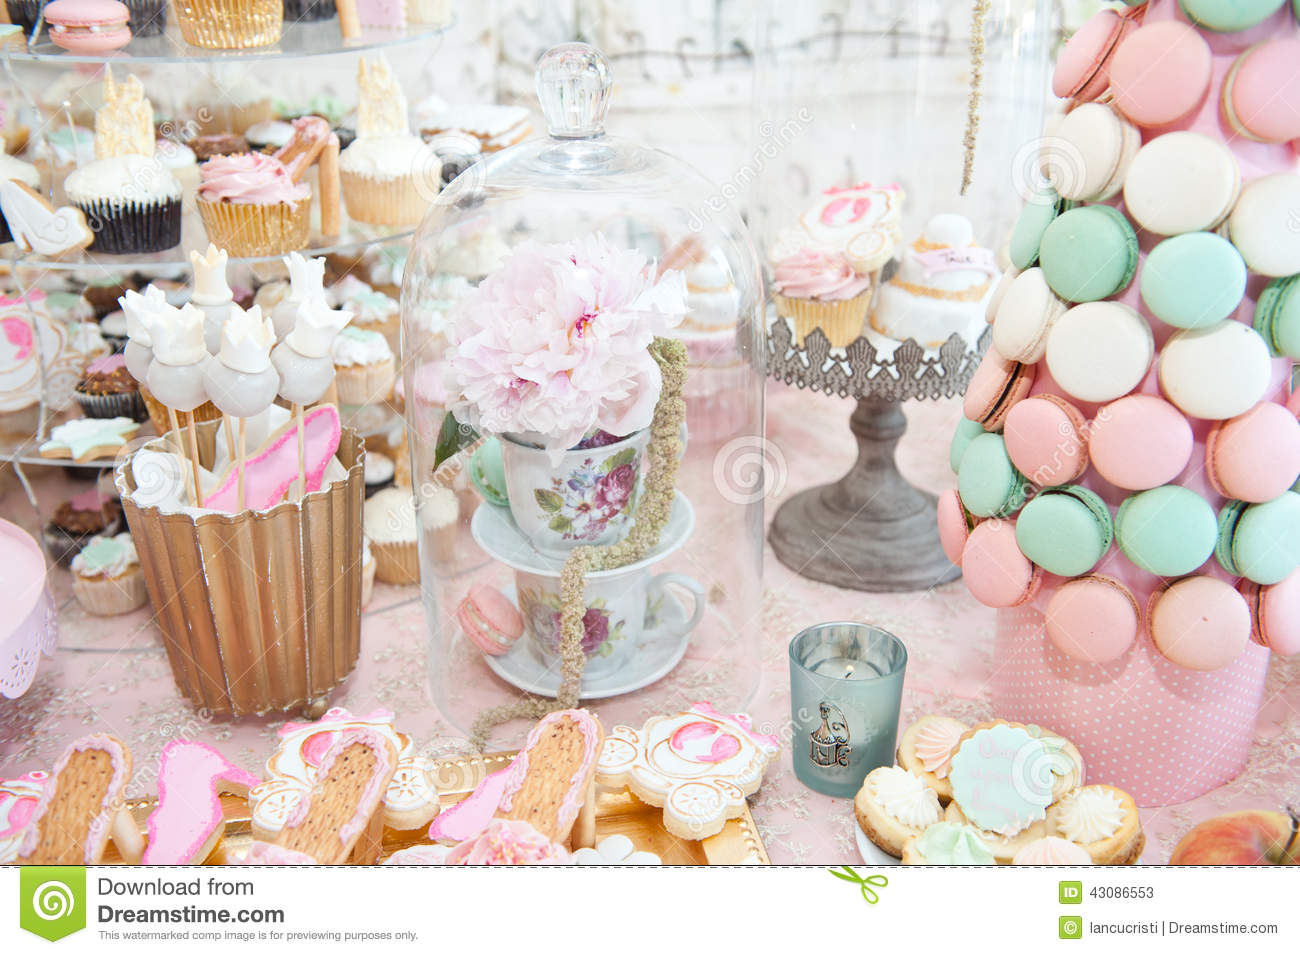 Wedding Decoration With Pastel Colored Cupcakes Meringues Muffins